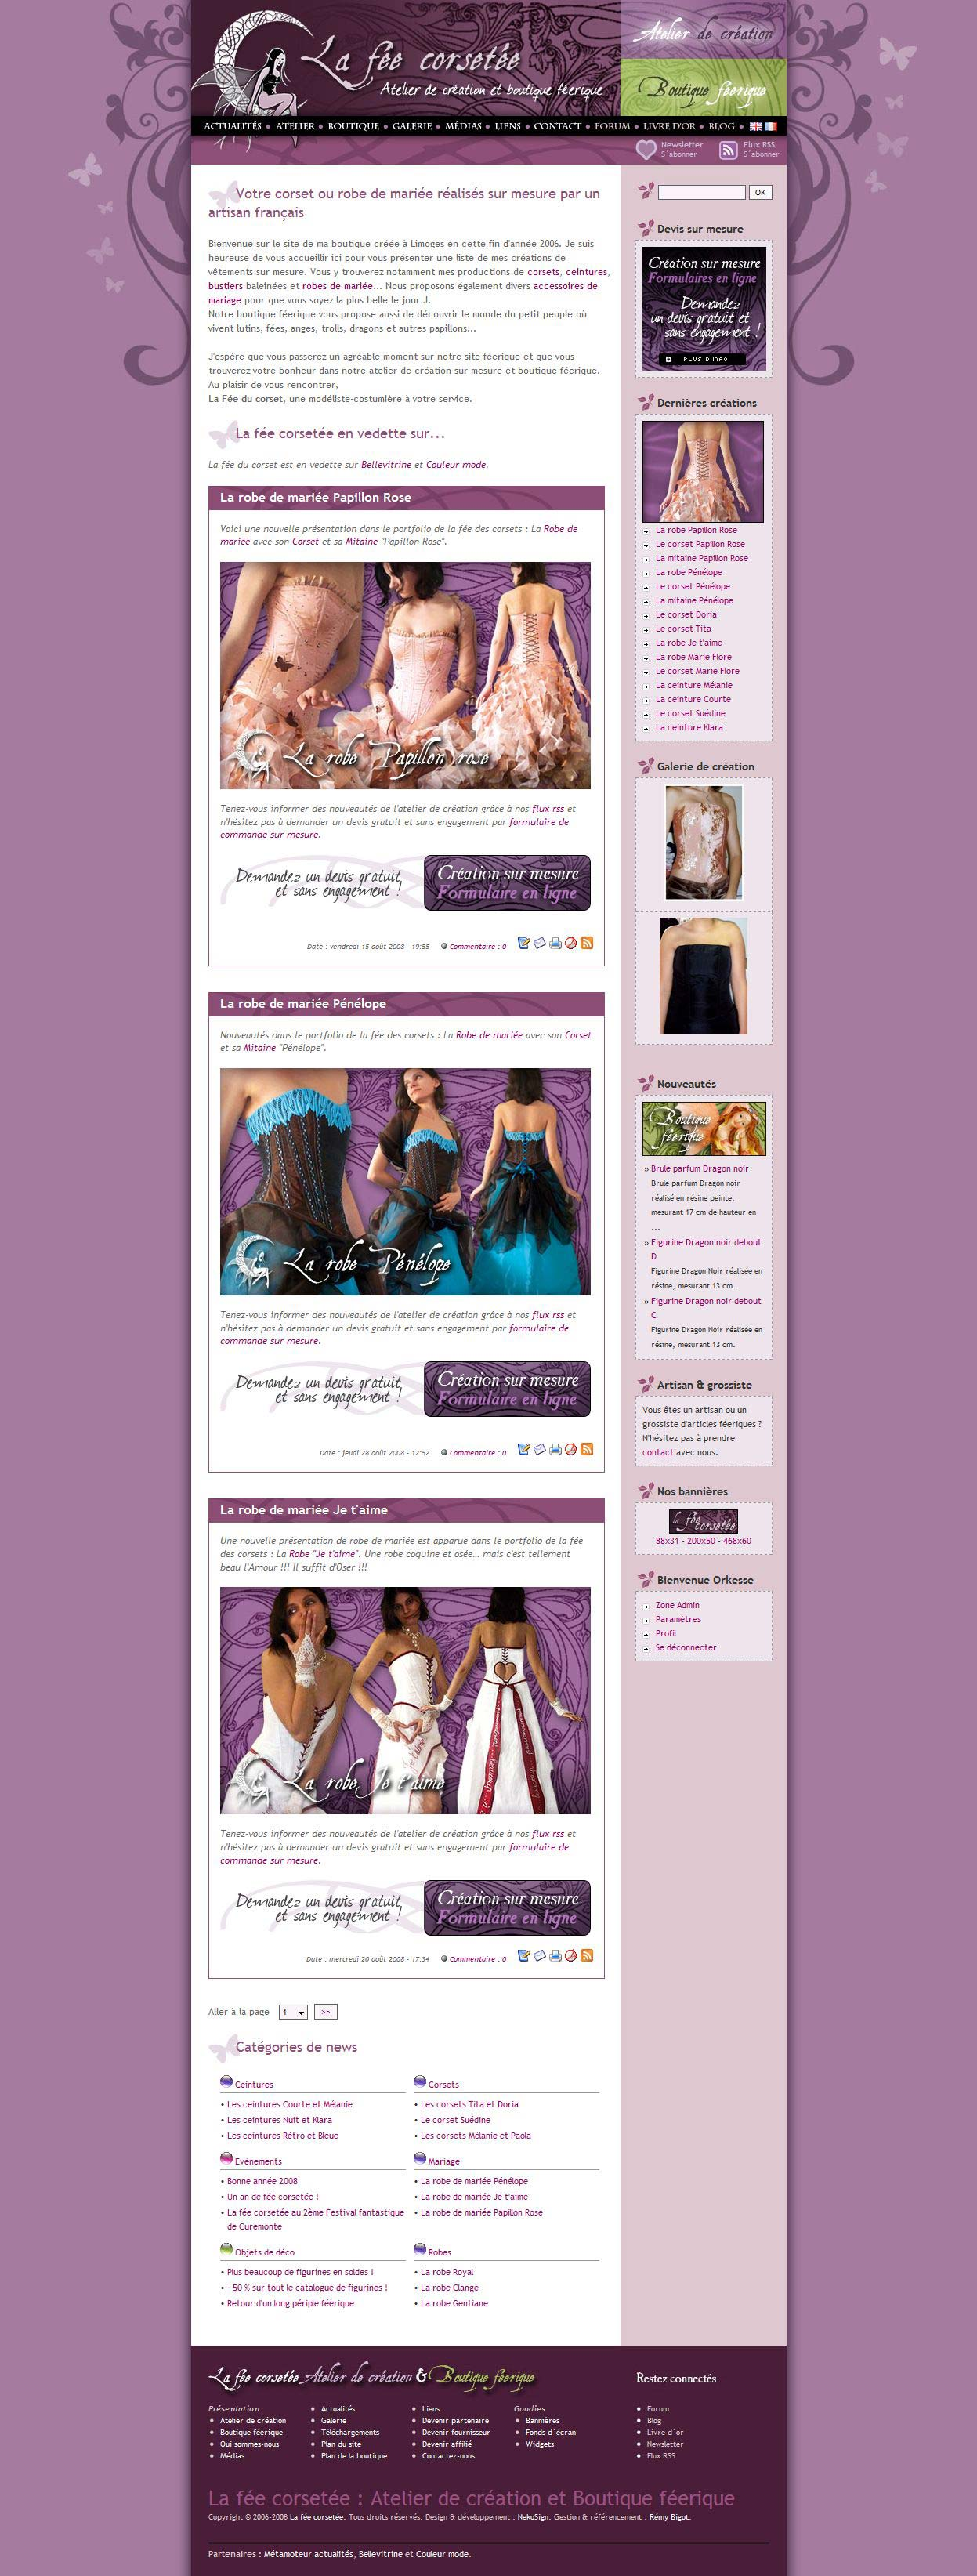 Interface La fée corsetée v3 website home